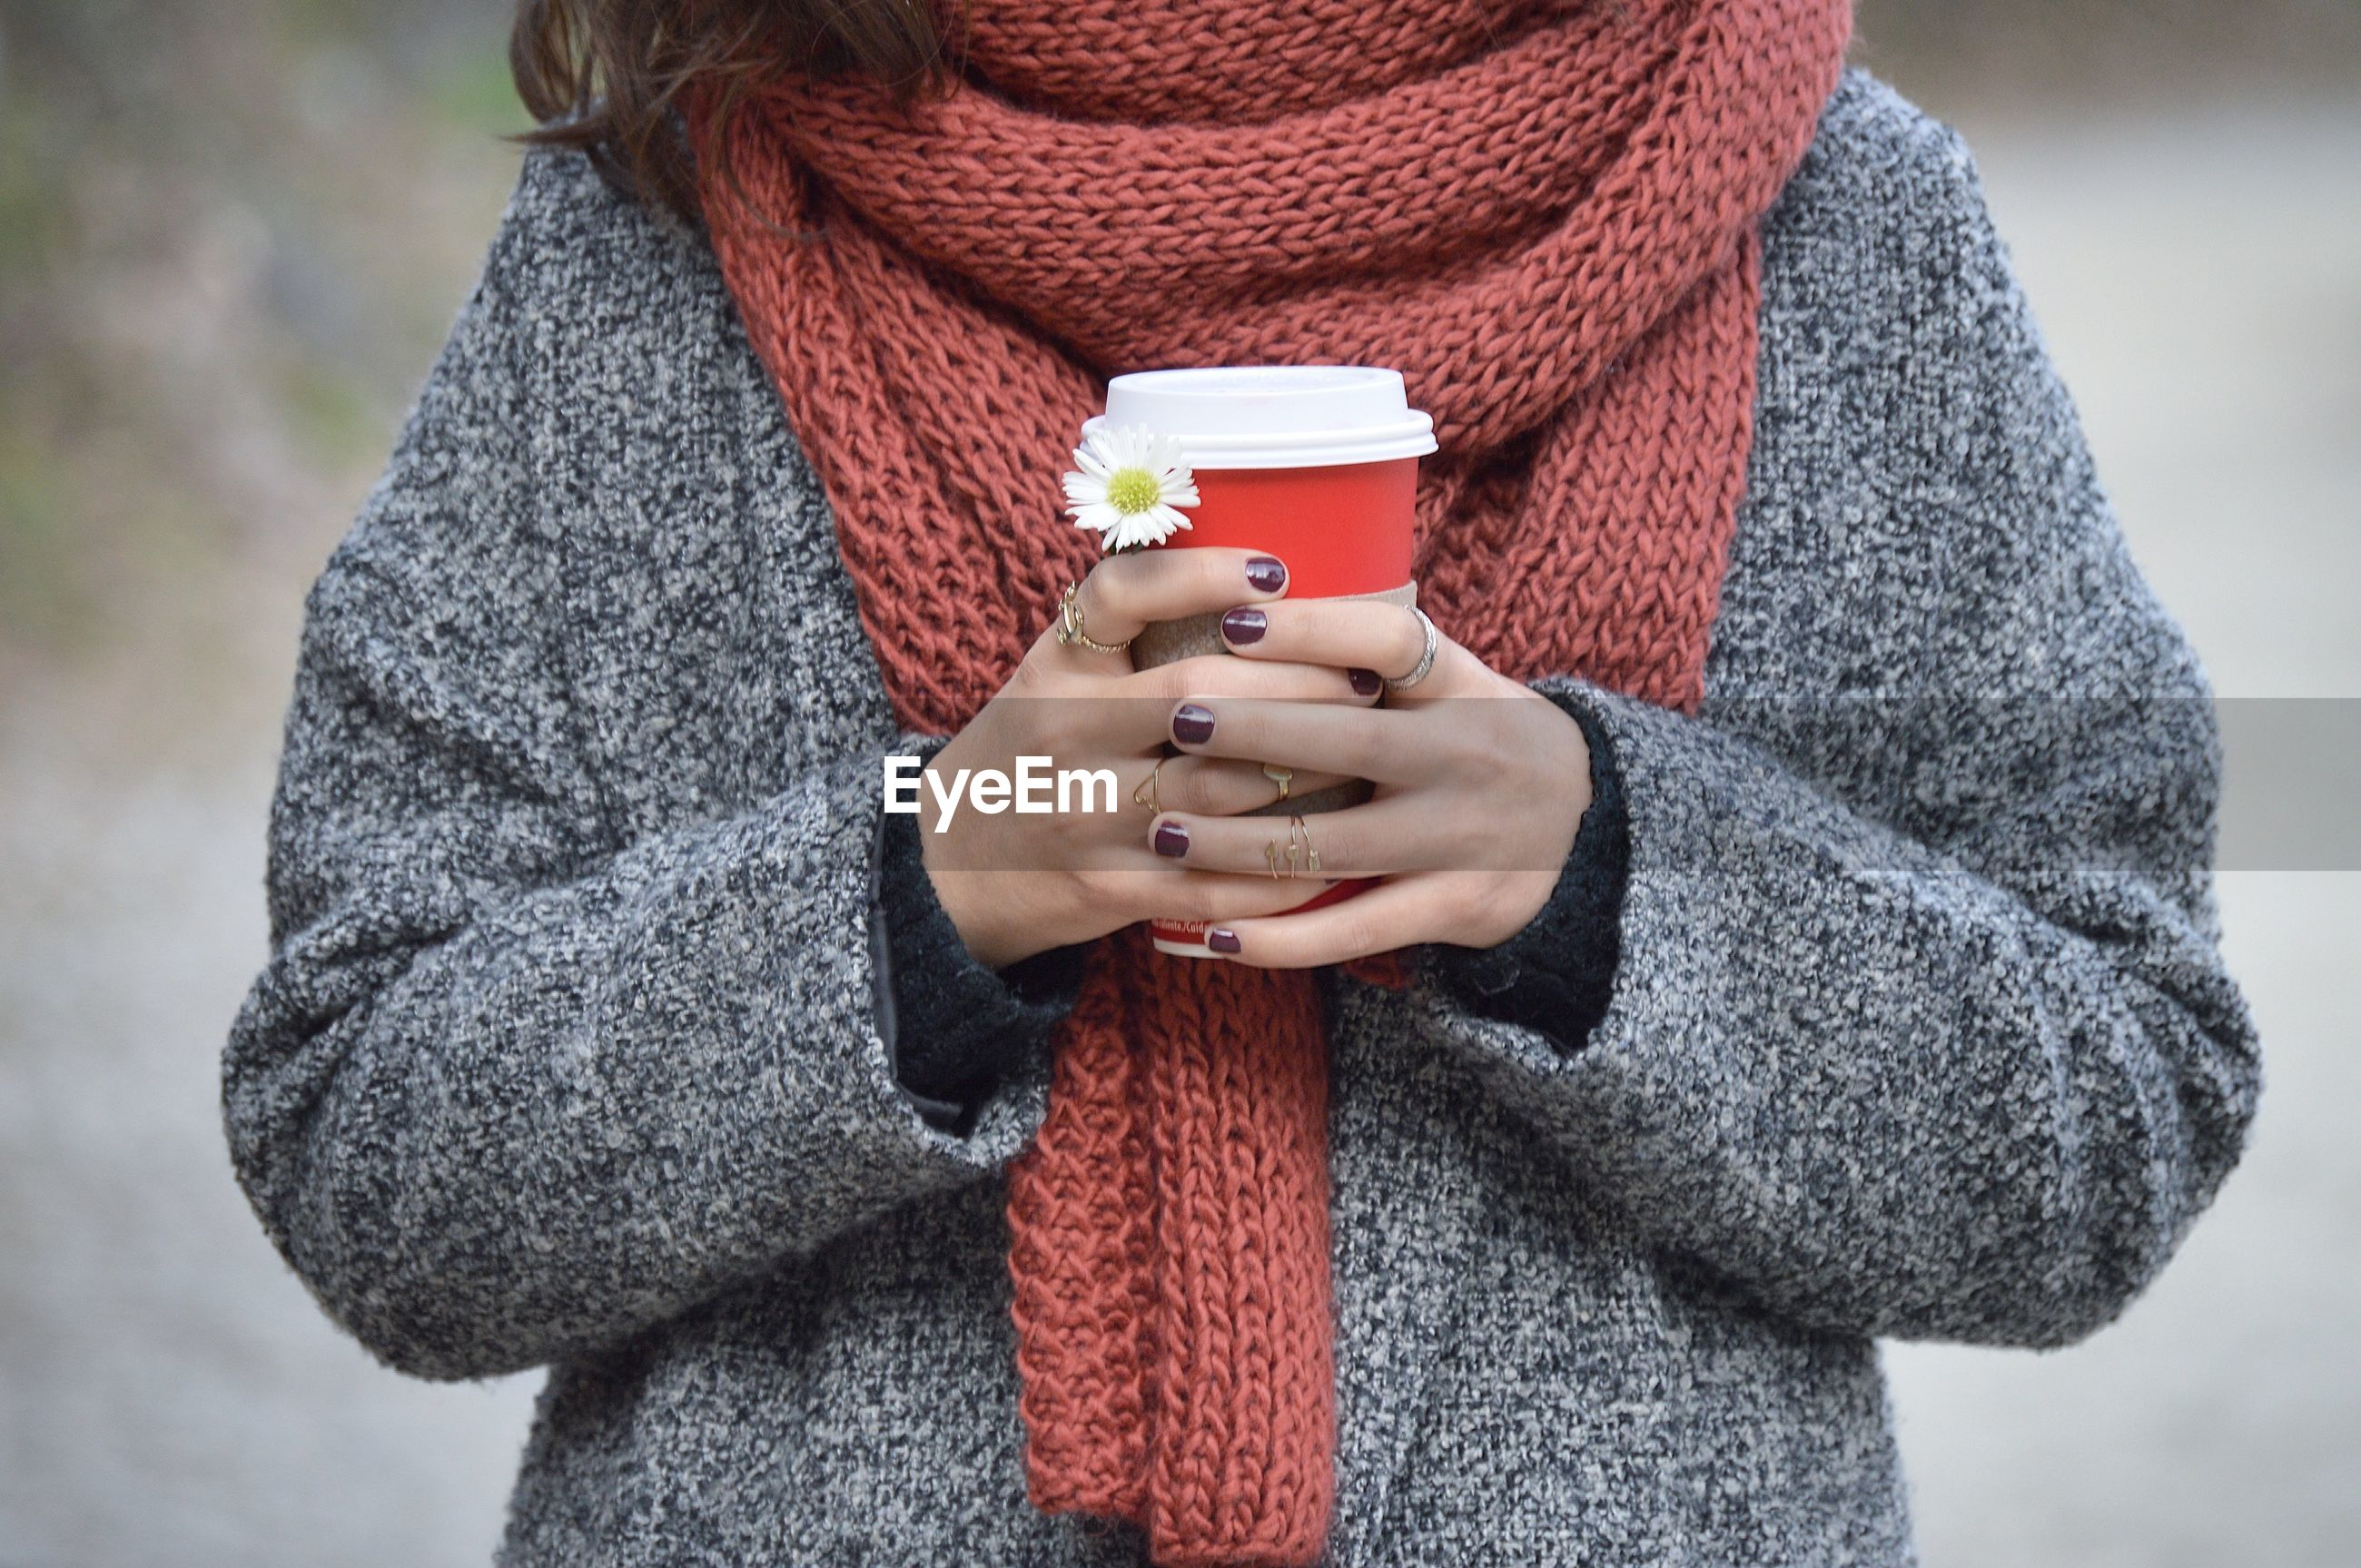 one person, real people, holding, sweater, cold temperature, winter, warm clothing, midsection, front view, scarf, focus on foreground, leisure activity, casual clothing, red, outdoors, day, close-up, drink, lifestyles, standing, young adult, human hand, people